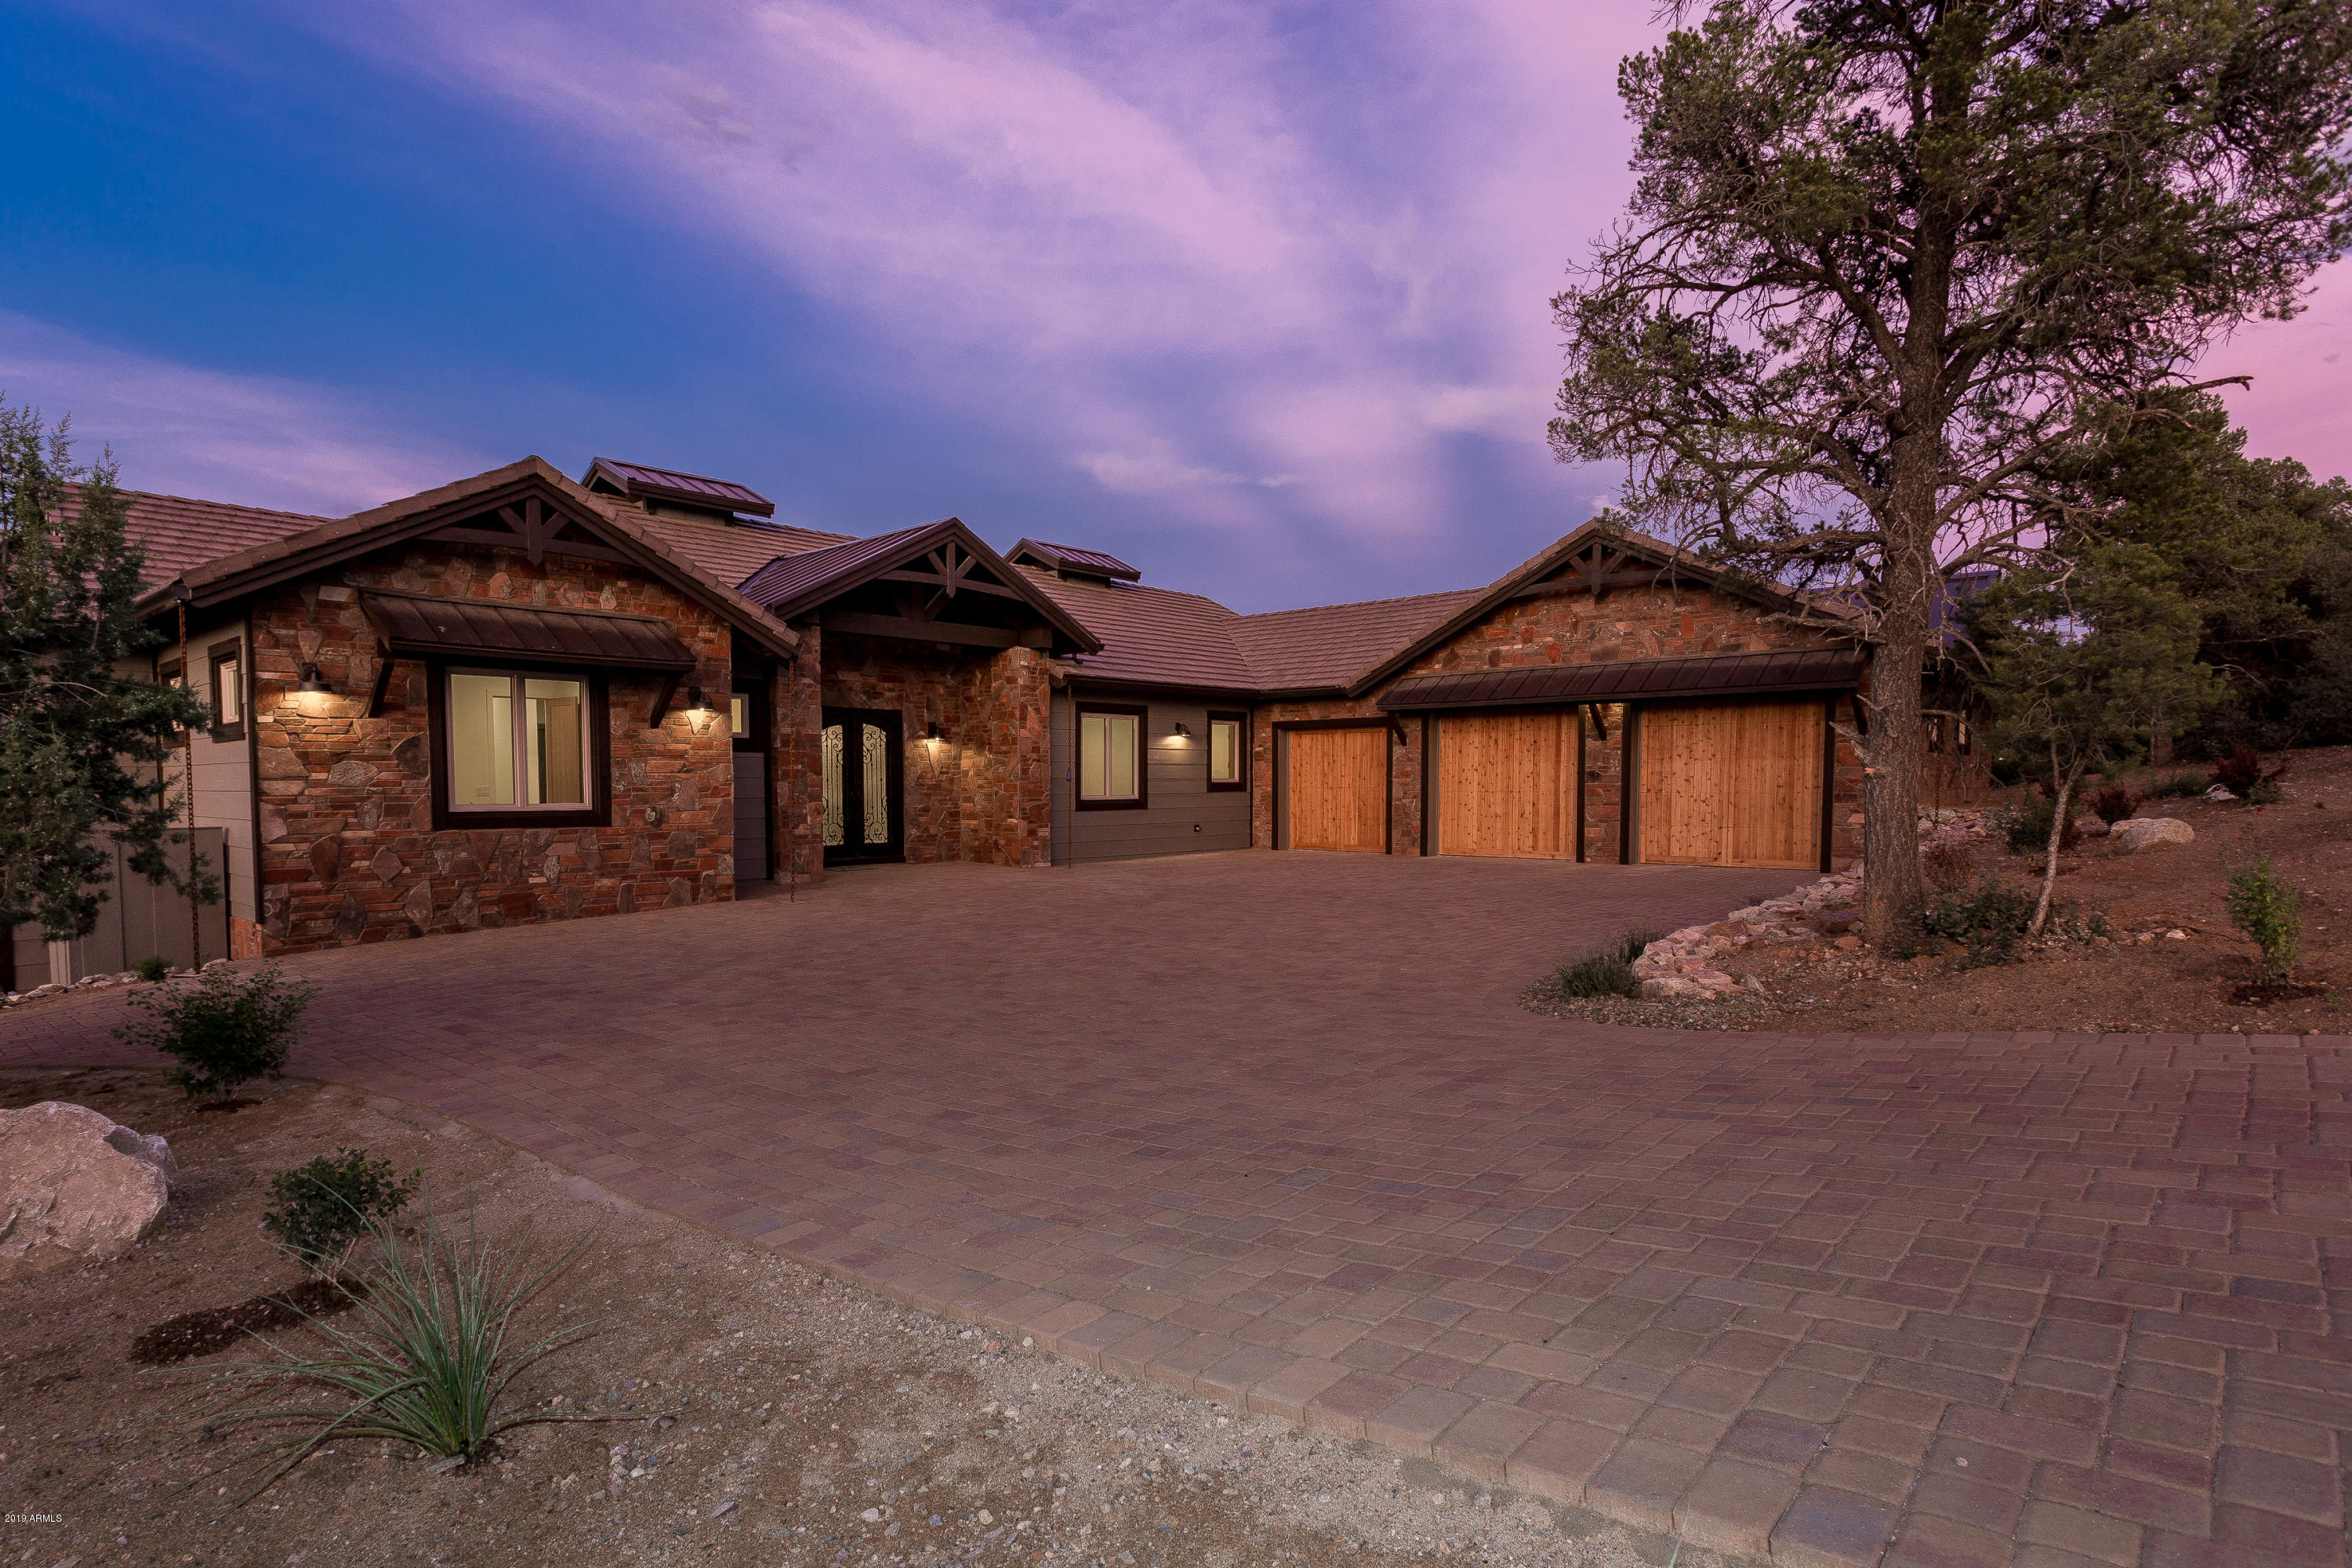 15385 N BADLANDS Circle, Prescott, Arizona